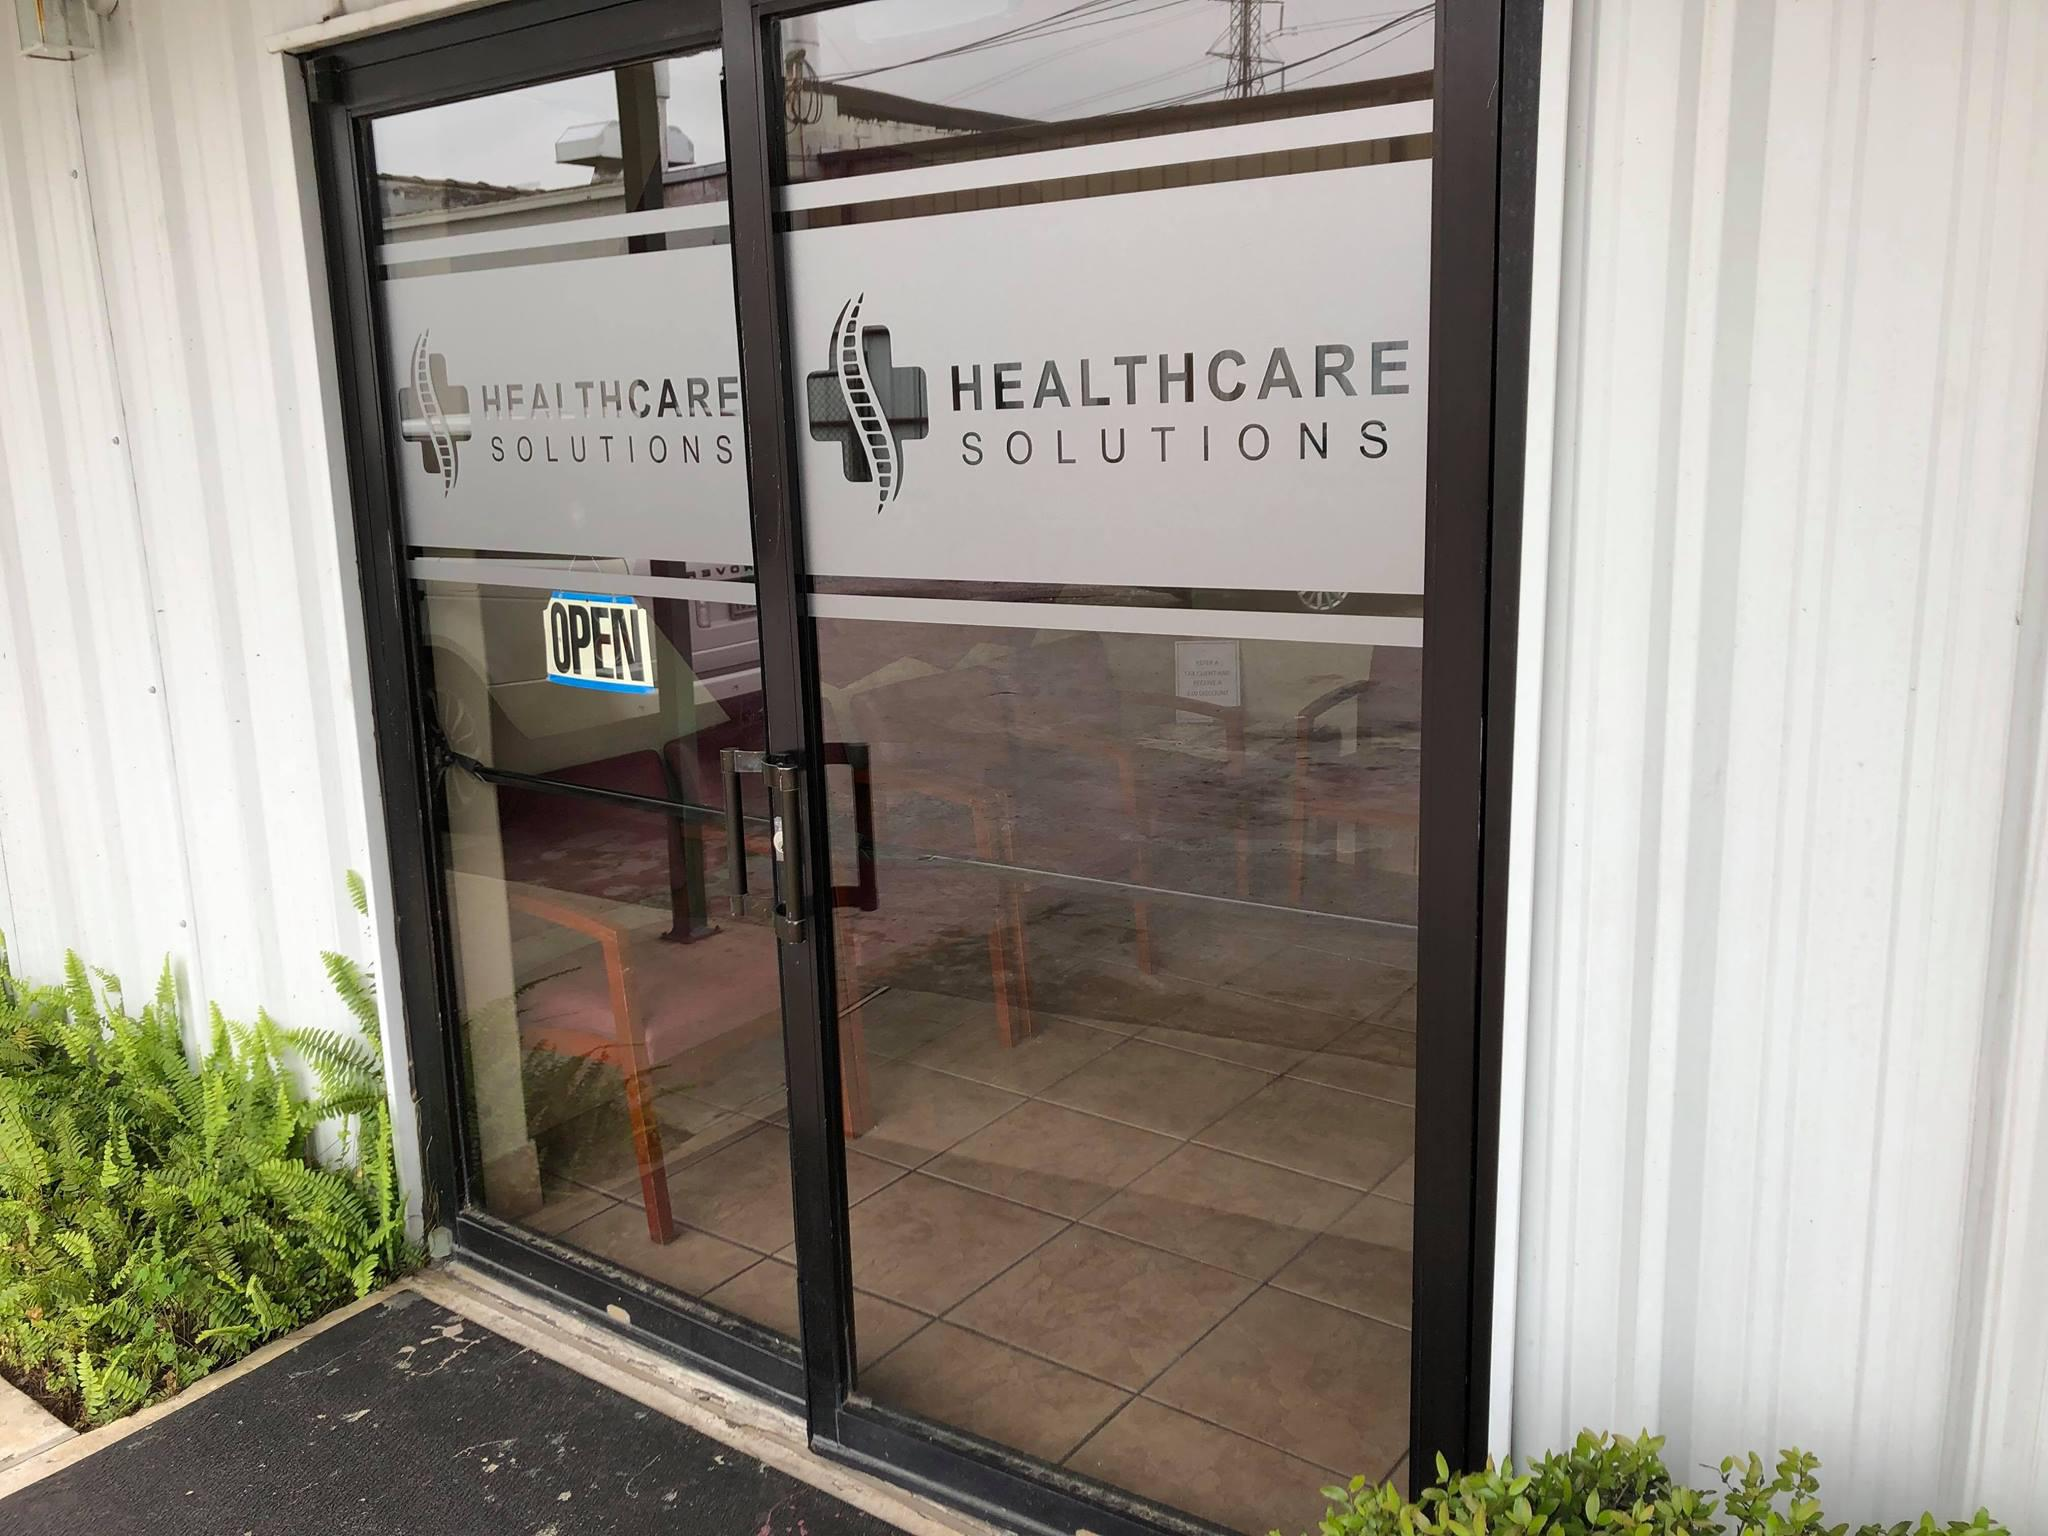 entry to healthcare solutions chiropractic care center in houston texas